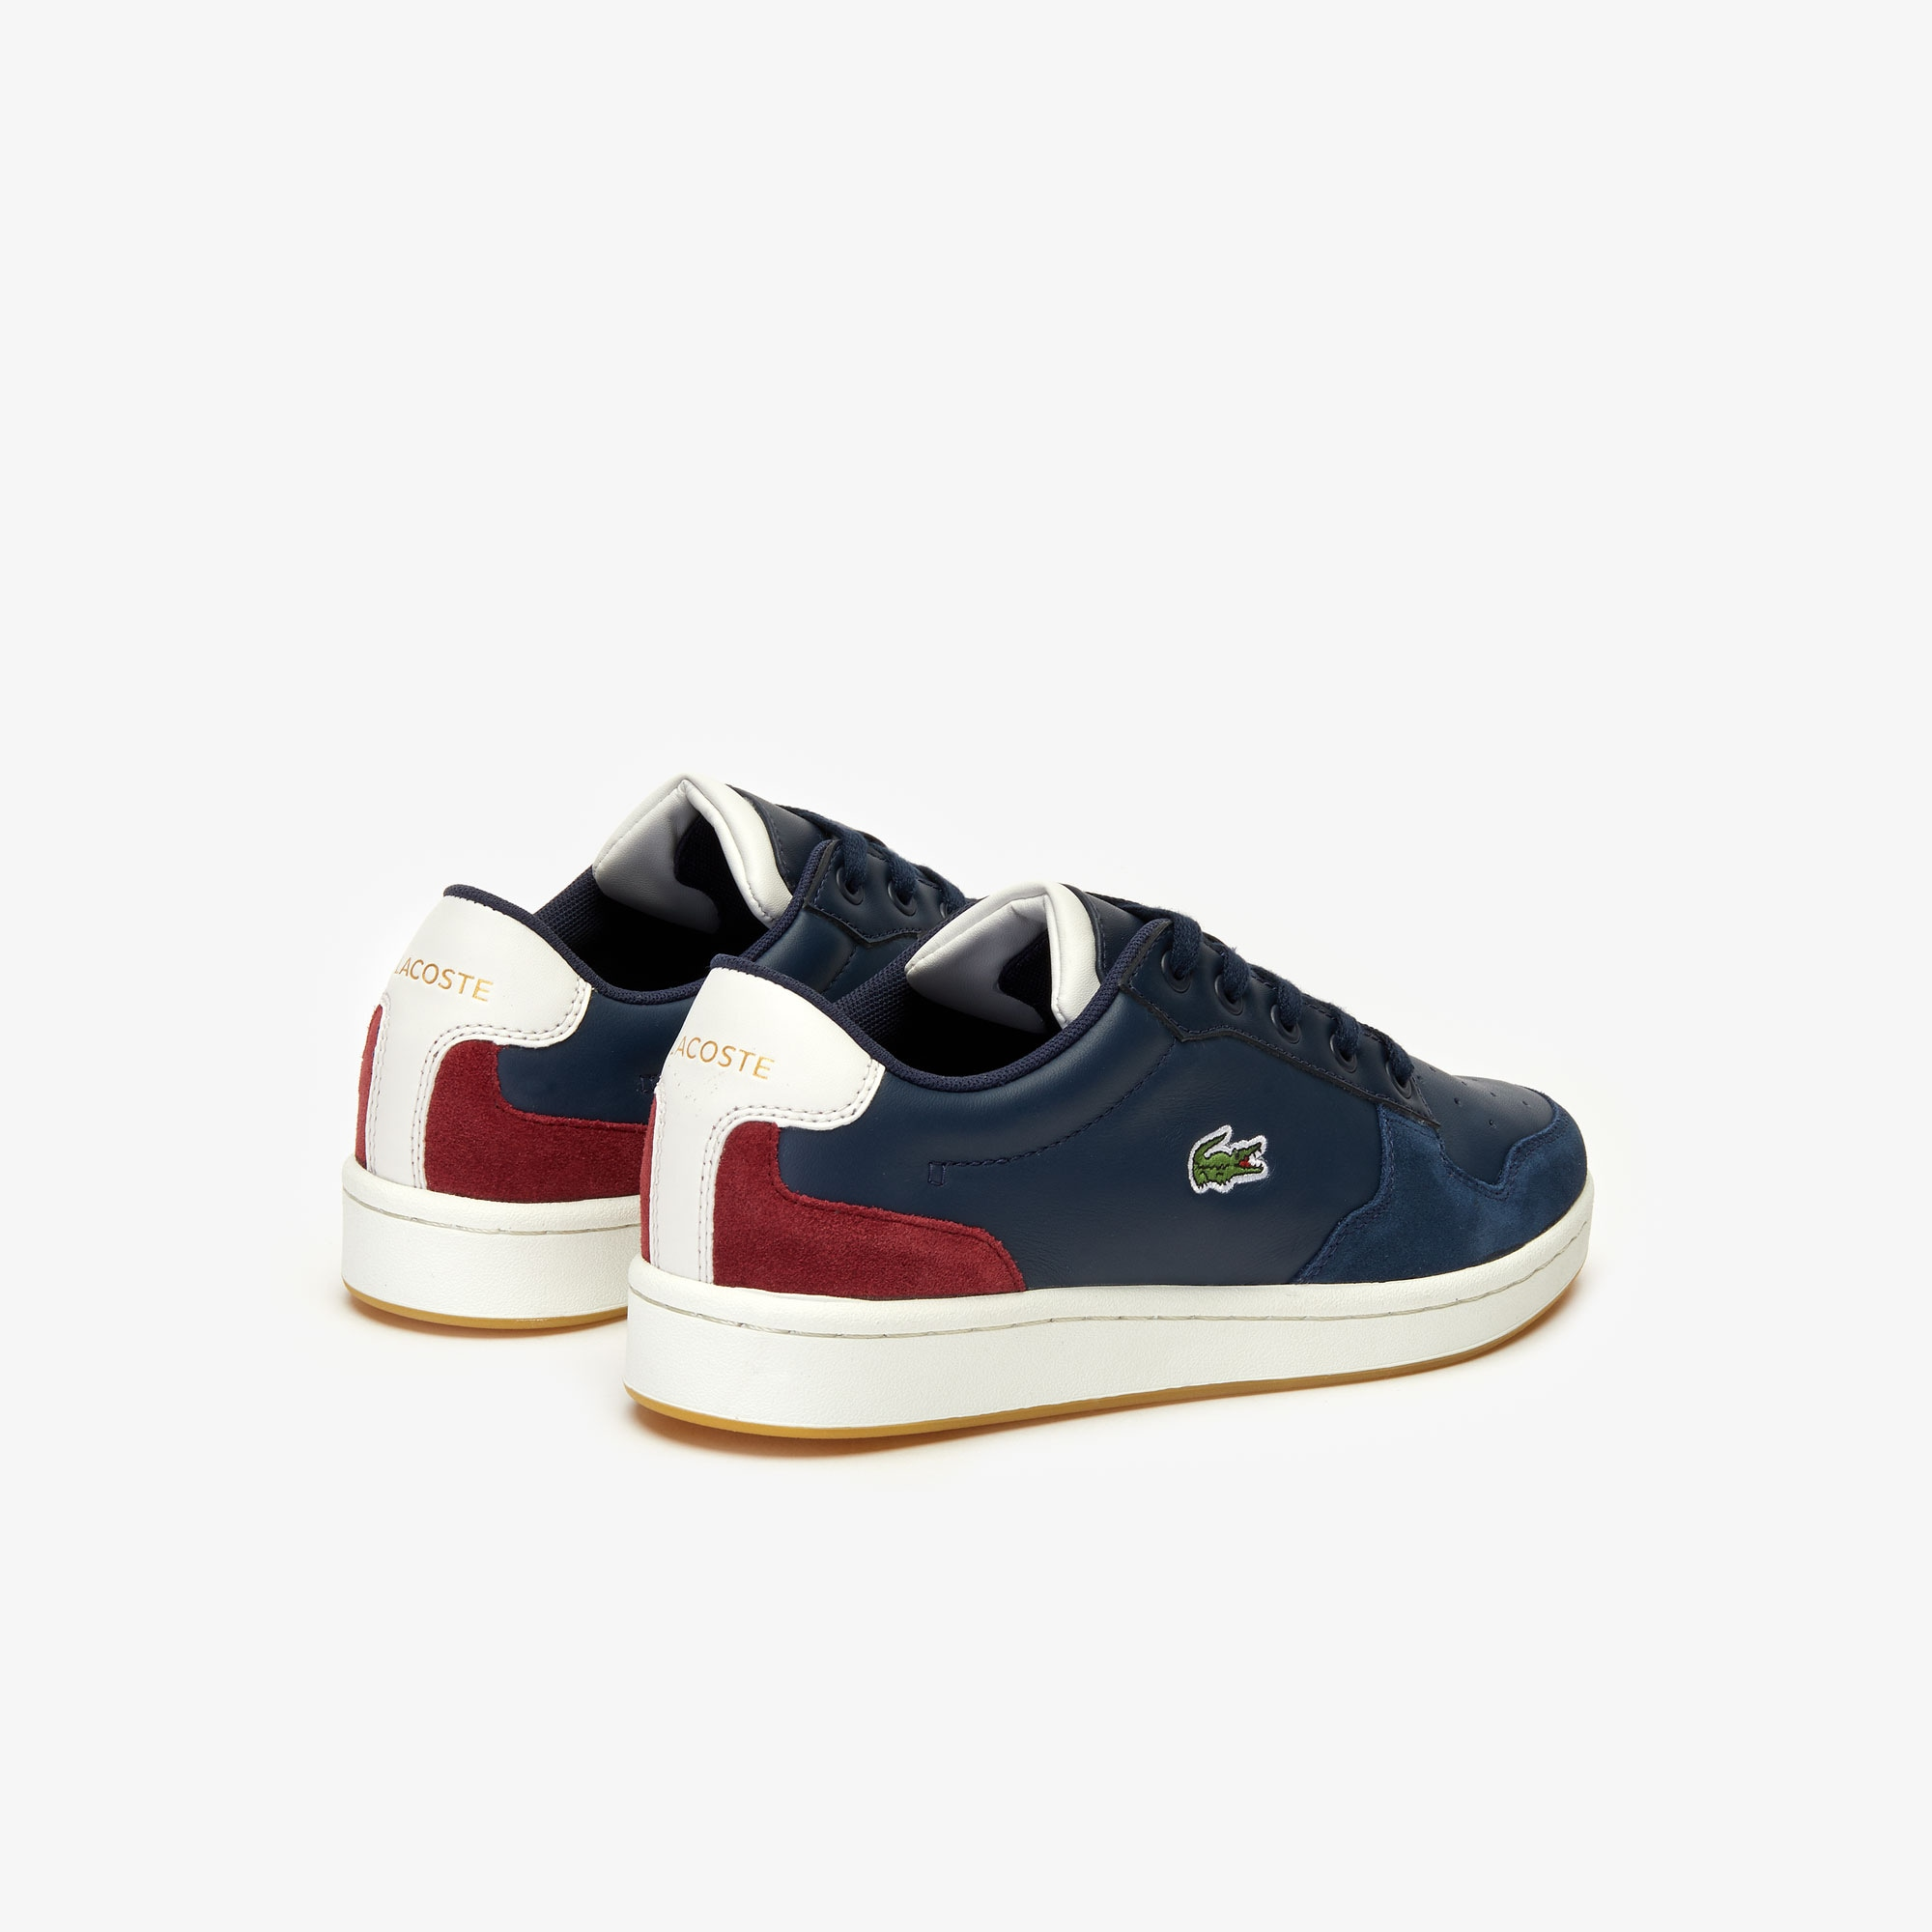 Women's Masters Cup Multicolor Leather and Suede Sneakers